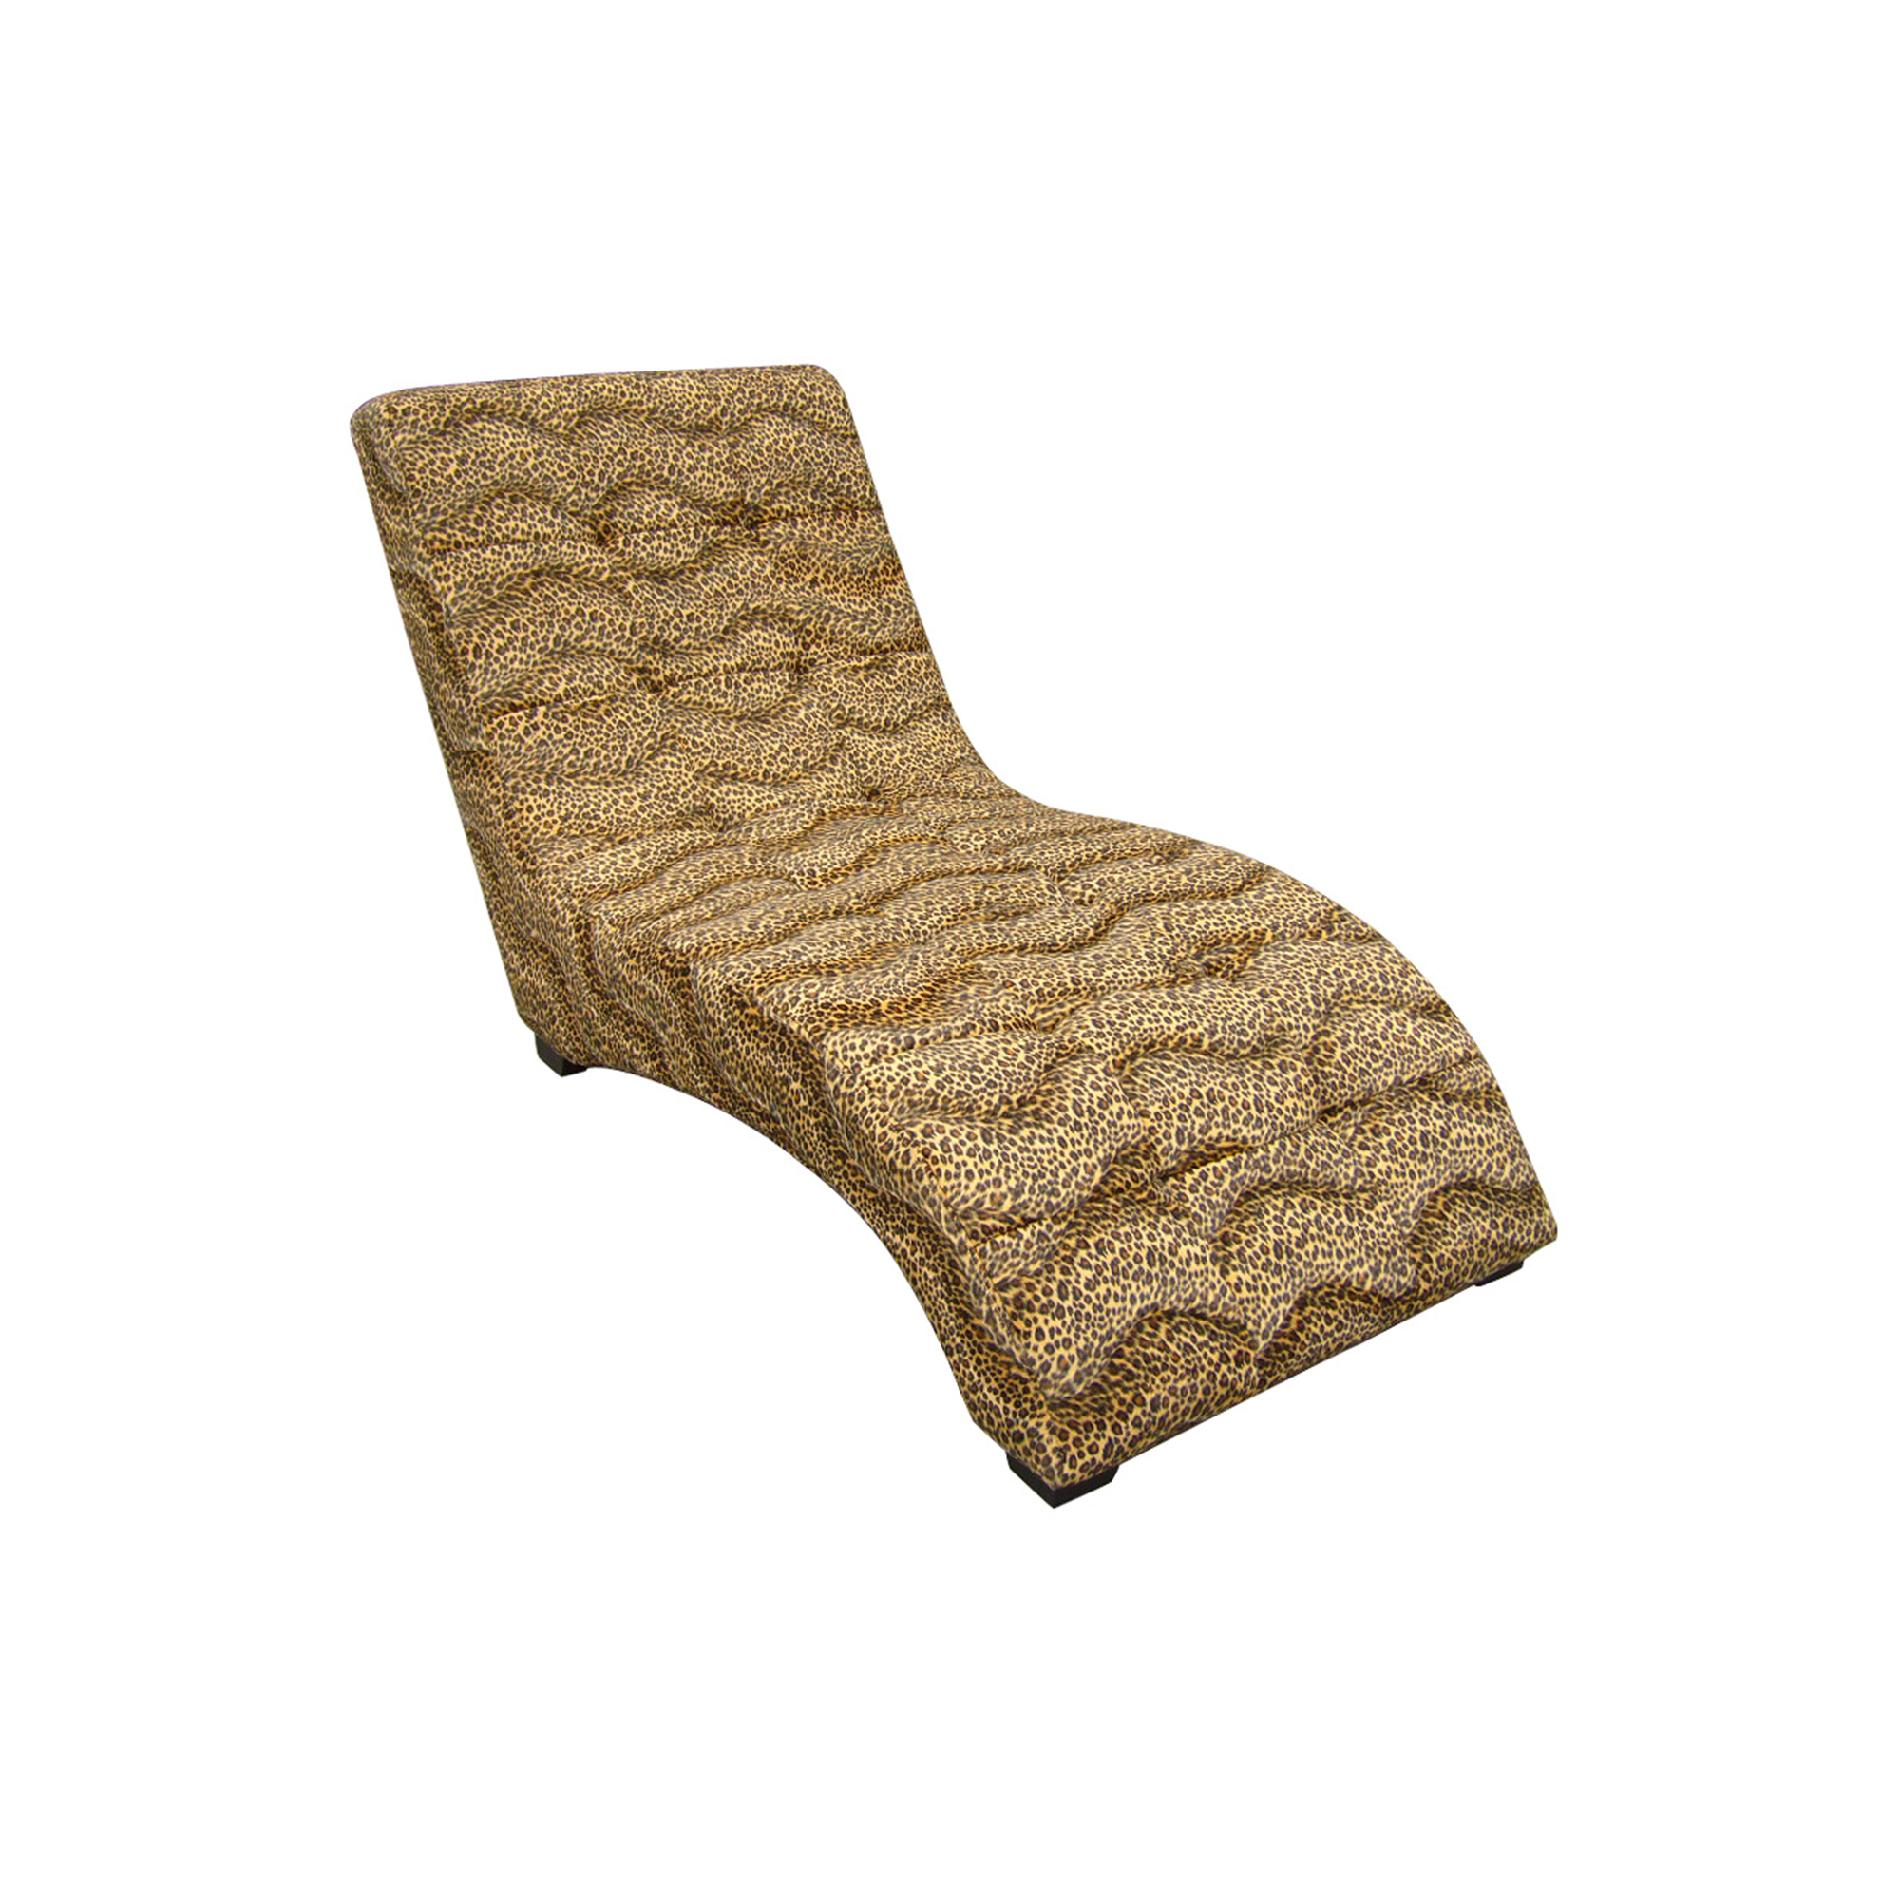 Ore International Modern Chaise with Leopard Print  sc 1 st  Sears : leopard print chaise lounge chair - Sectionals, Sofas & Couches